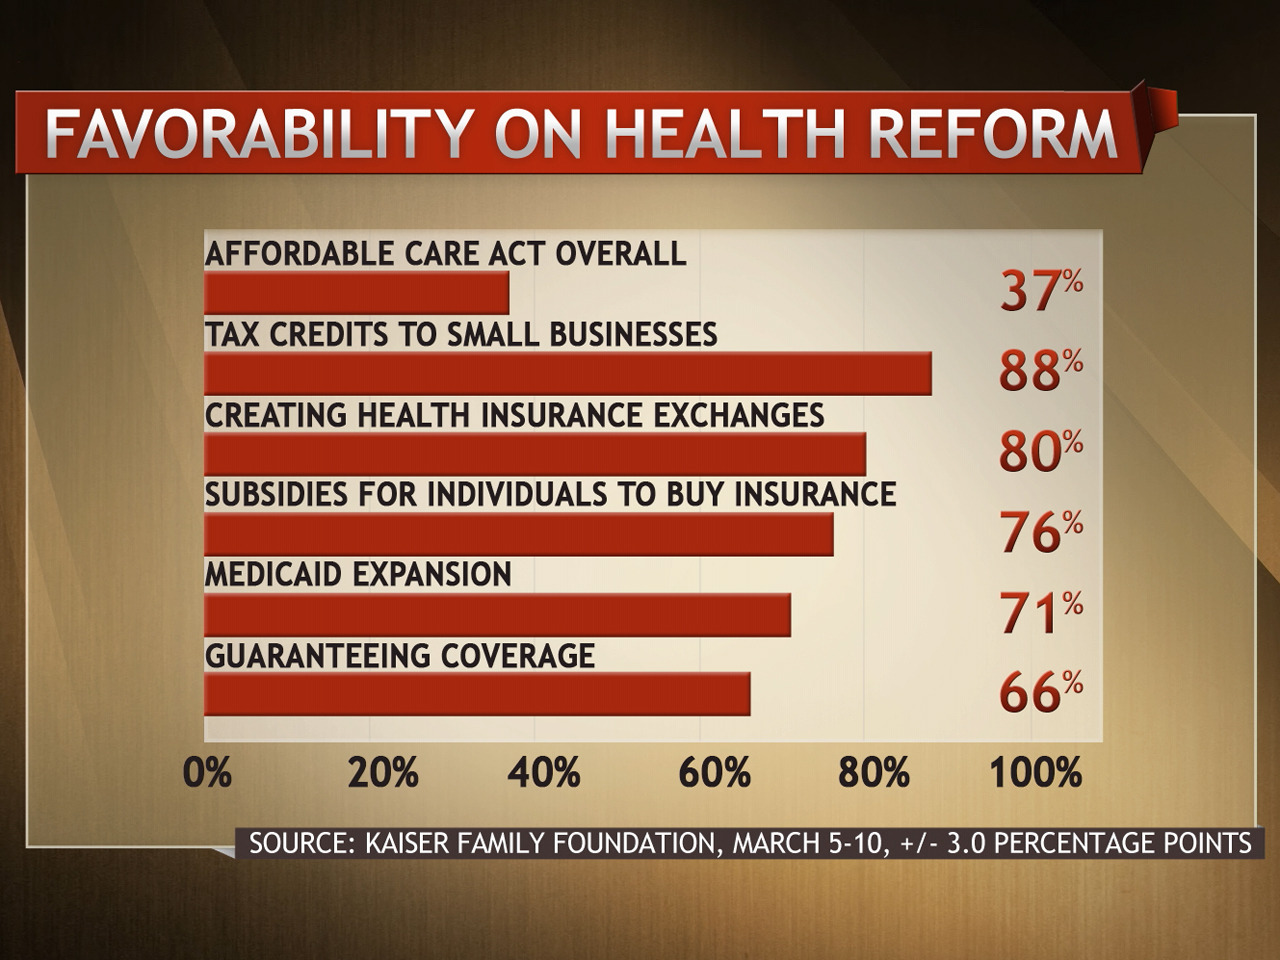 A recent survey found that although the Affordable Care Act may not poll well overall, the actual services it provides receive widespread popularity. Saturday's Up with Steve Kornacki panel looked at why this is happening.